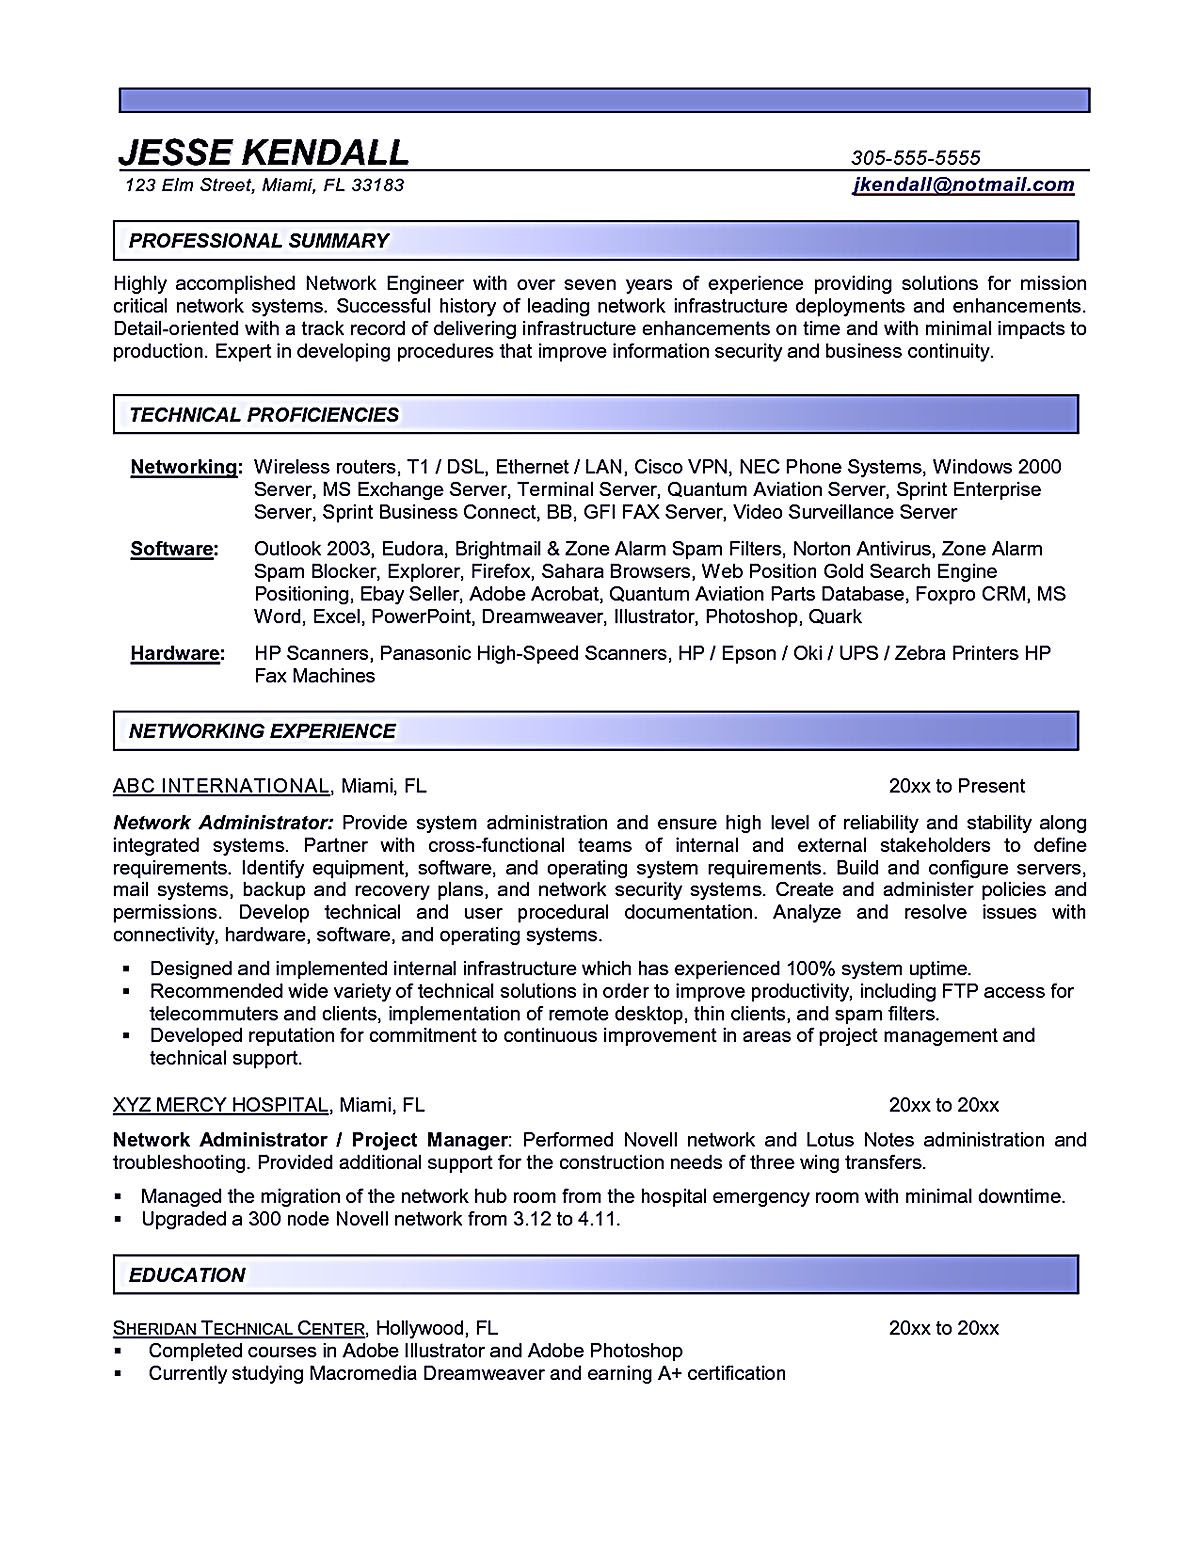 Account Receivable Resume Fair Account Receivable Resume Shows Both Technical And Interpersonal .